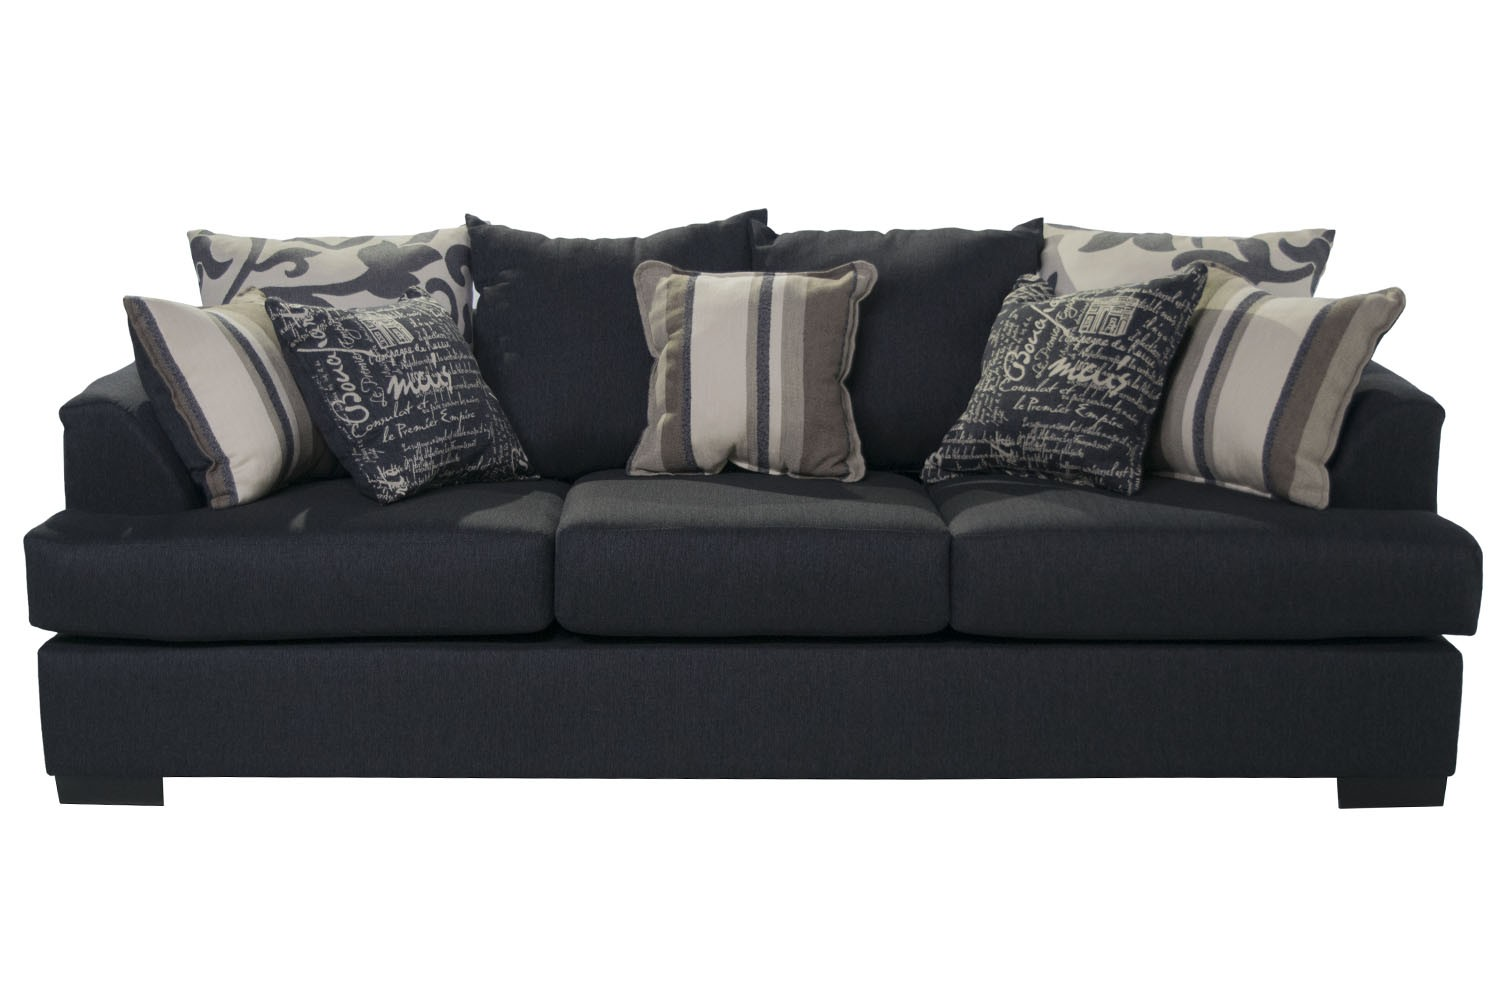 Old Fashioned L Shaped Sofa Sofas Couches Mor Furniture For Less